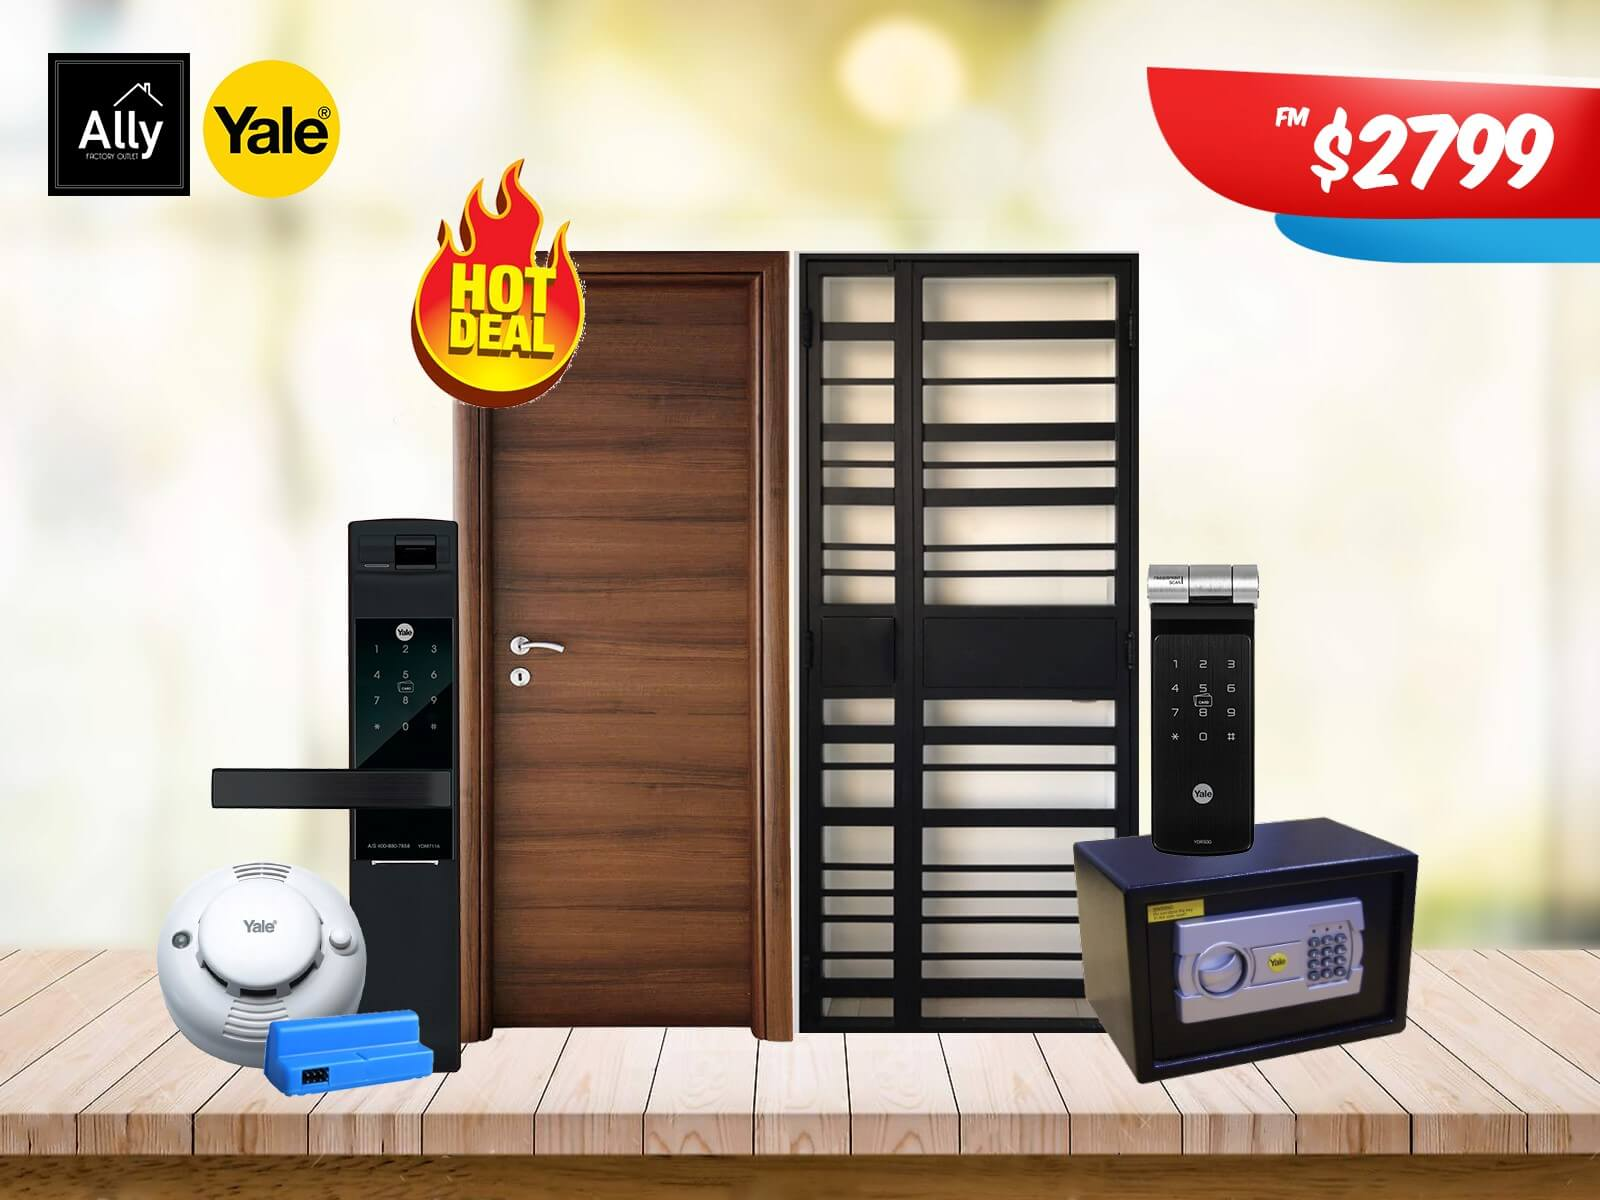 Ally Factory Outlet - Door, Gate, Lock and Safe Promotion 20191016 - 04